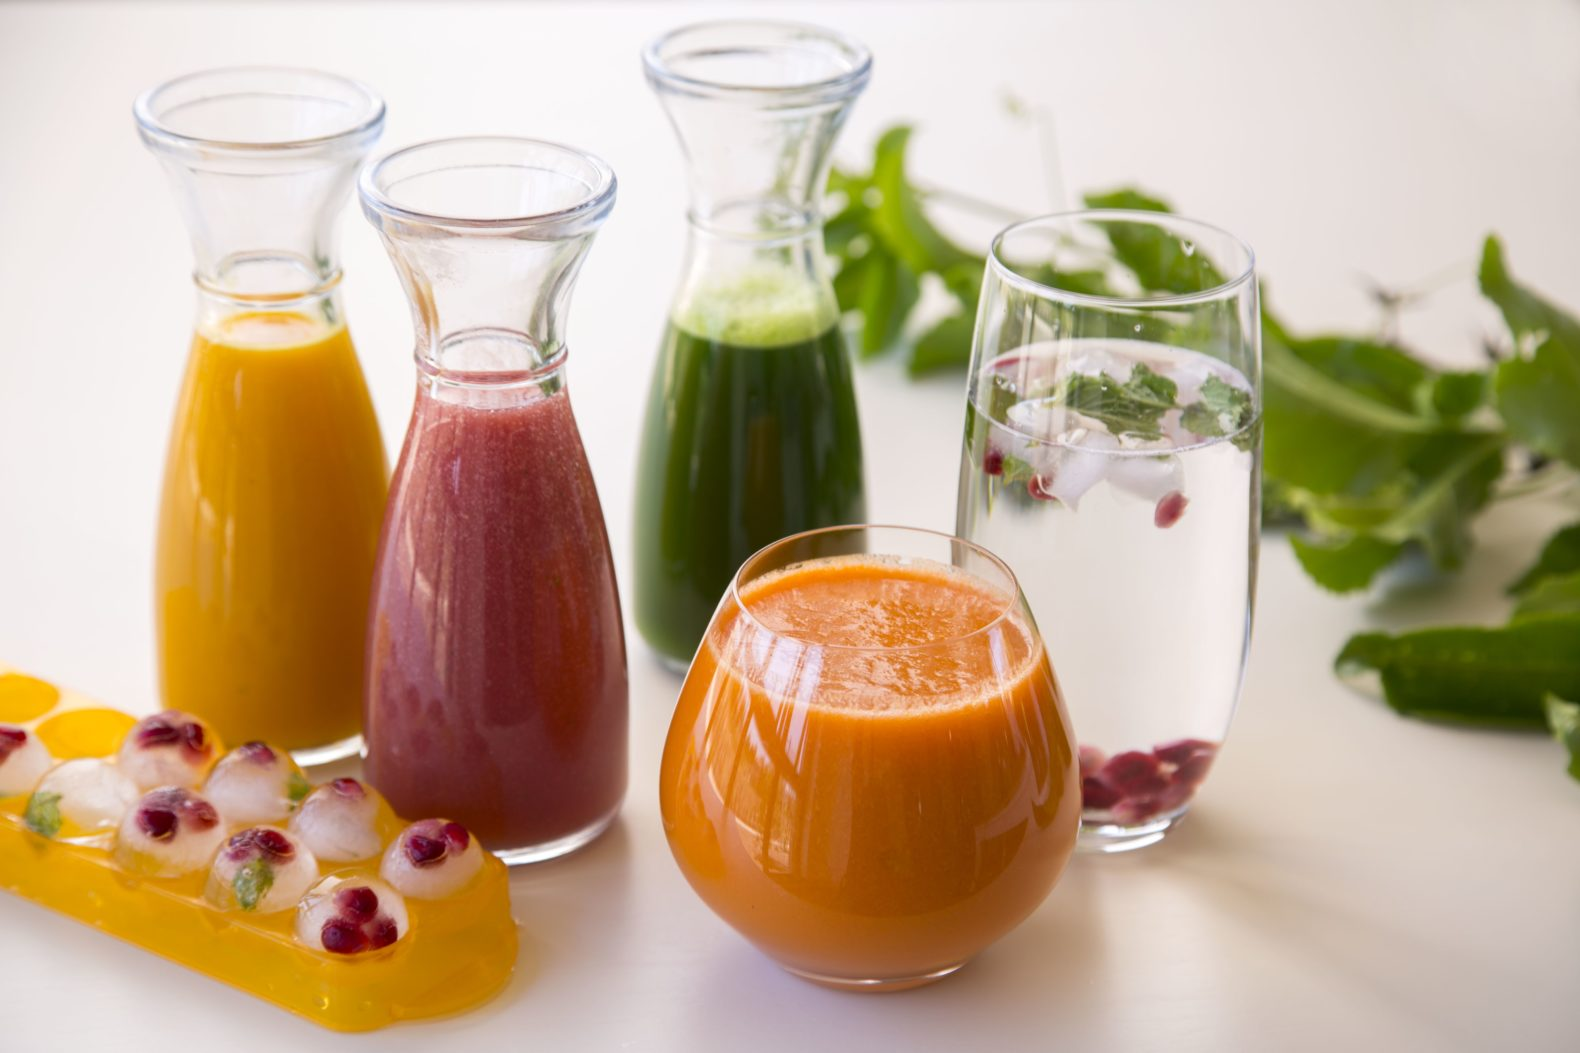 healthy-juice-smoothie-fruit-nutritional-wellbeing-cuisine-detox-sante-wellness-retreat-spa-hotel-southafrica